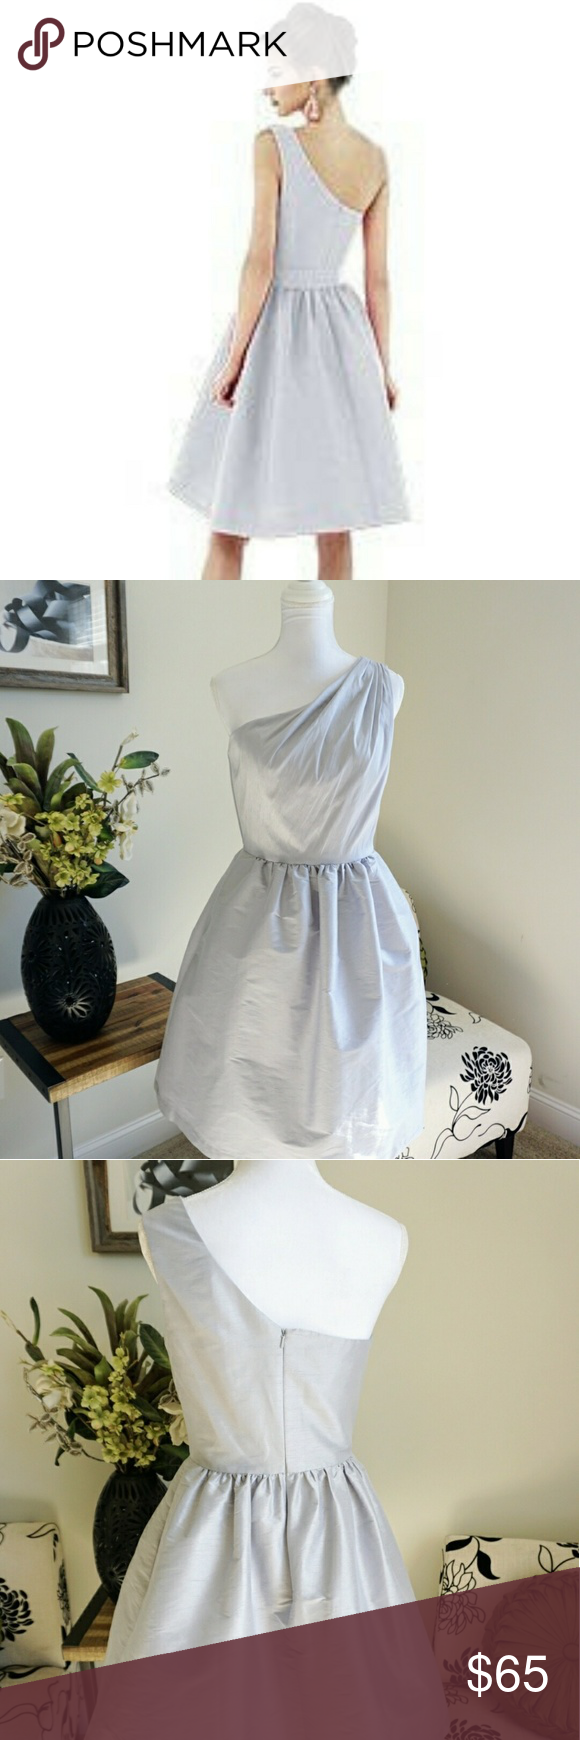 Raw silk wedding dress  Alfred Sung Dress  Alfred sung Gray color and Full skirts